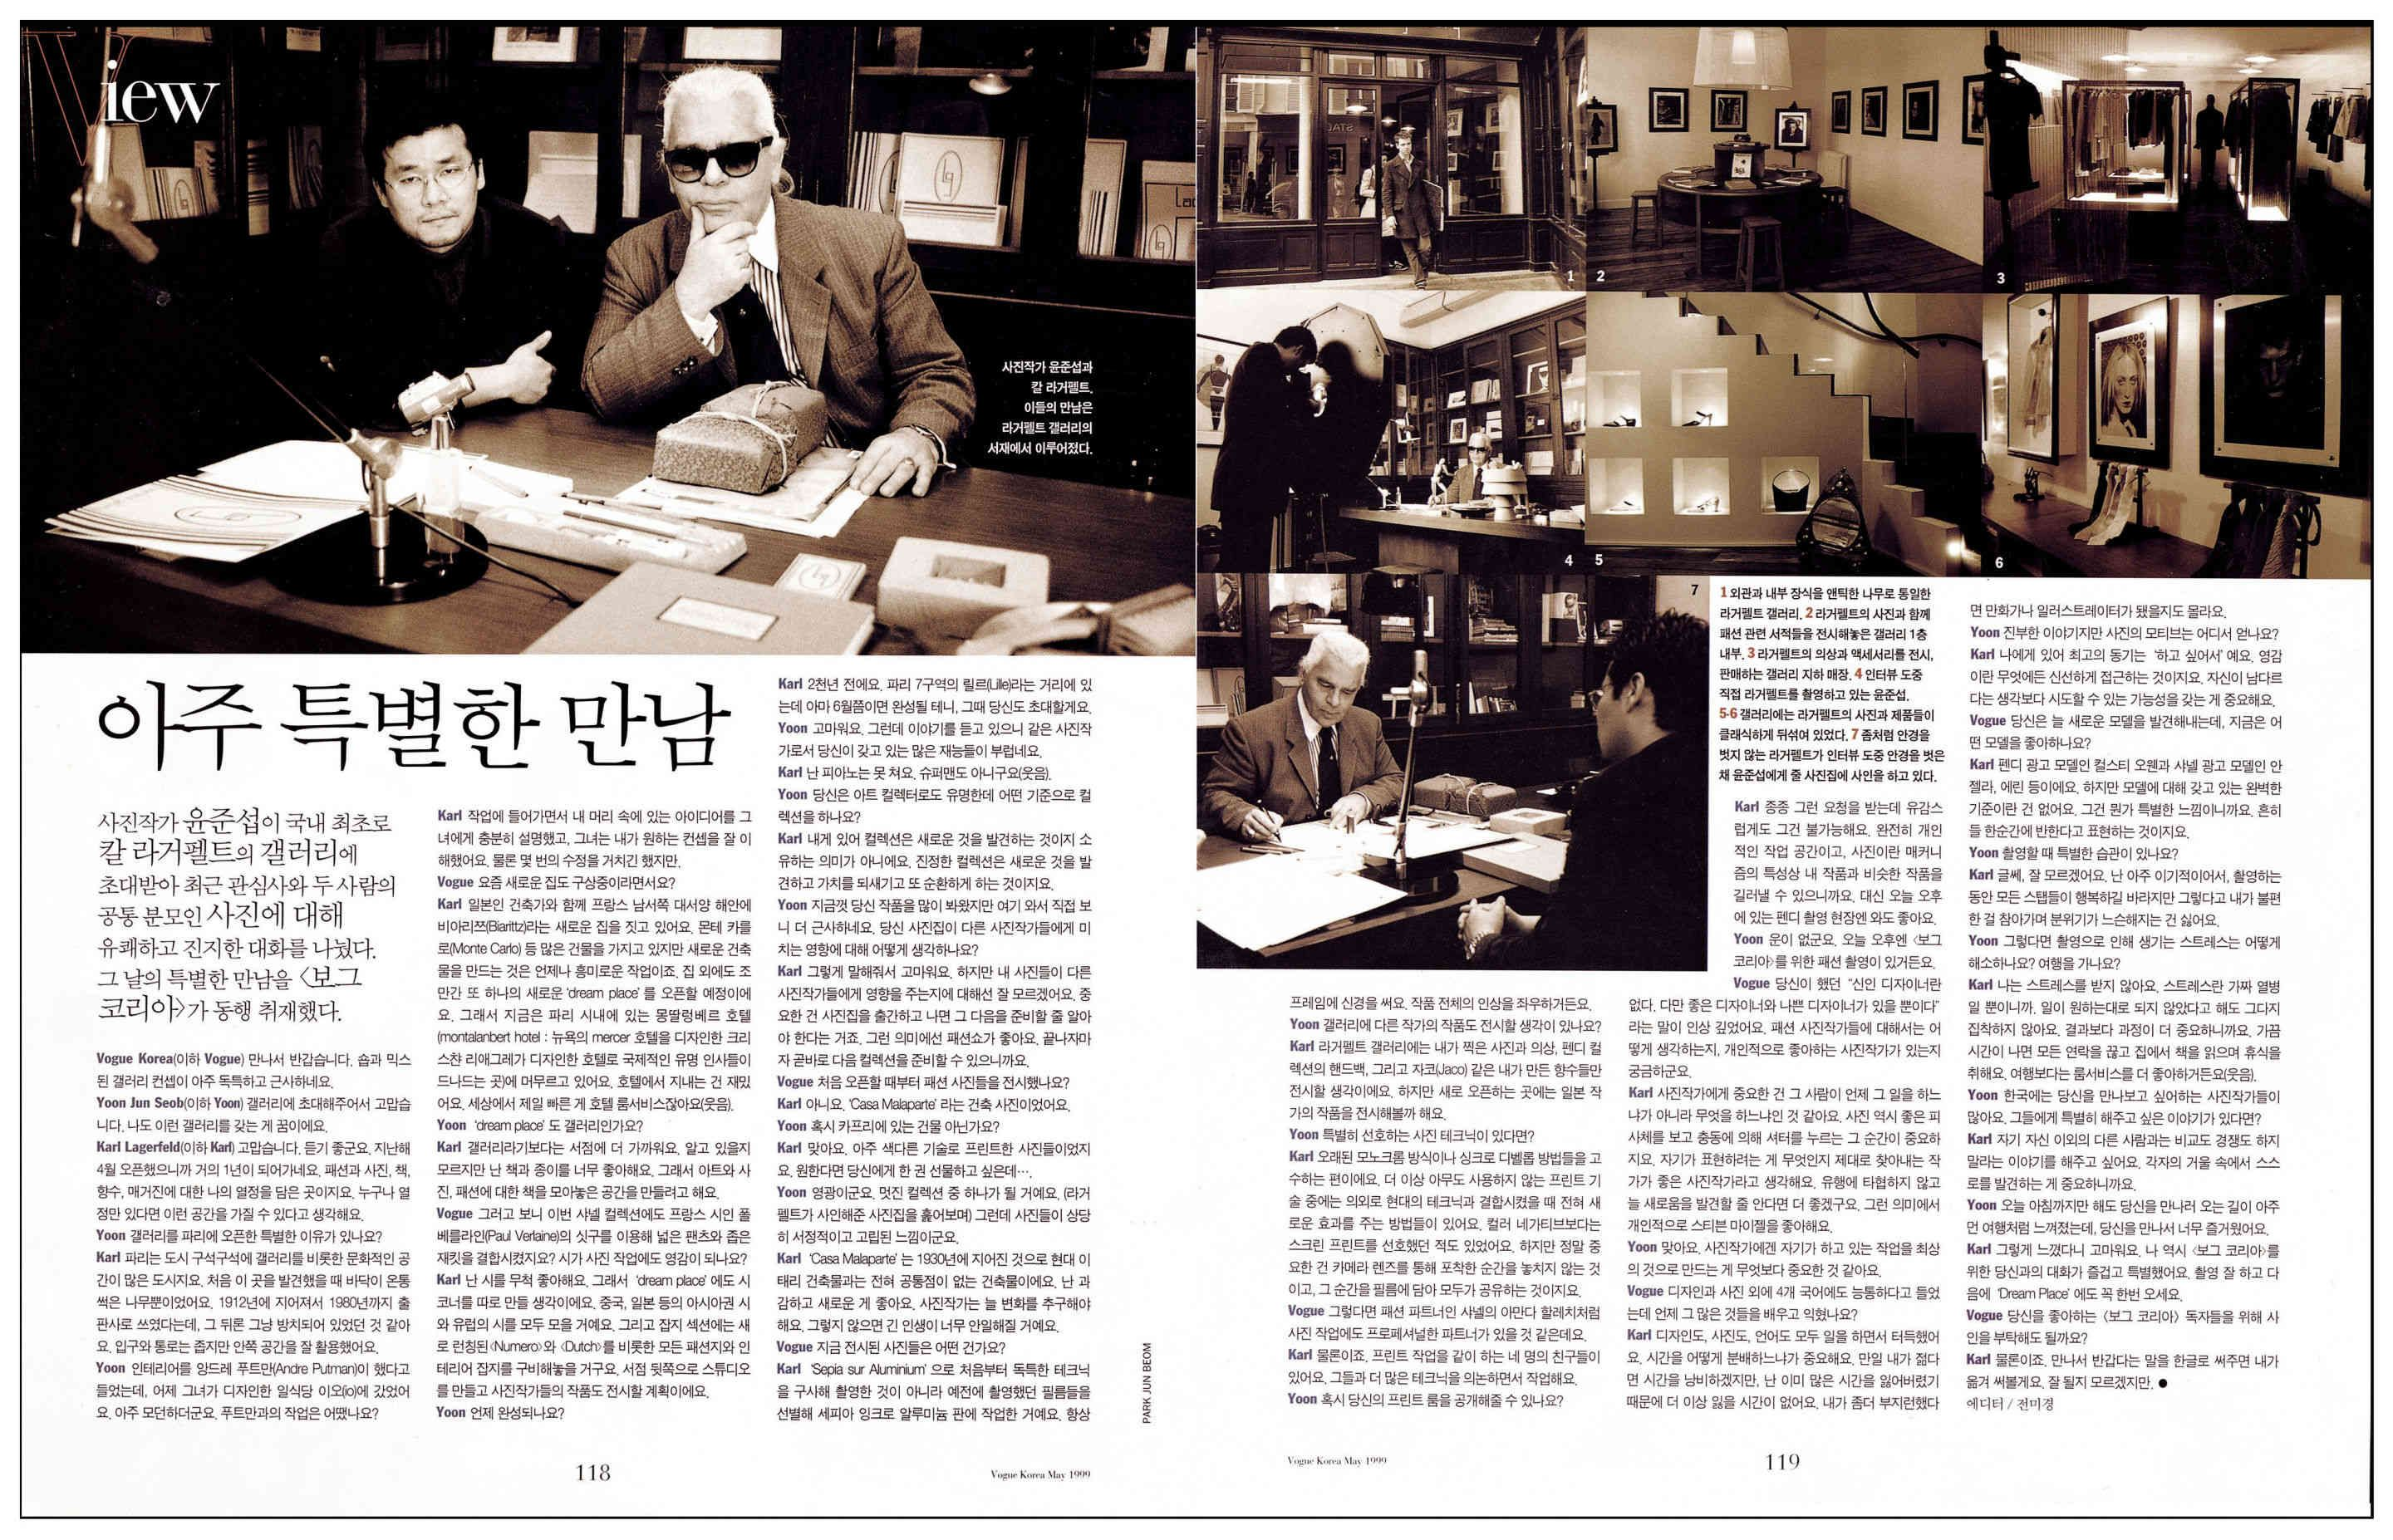 Karl Lagerfeld with Junseob Yoon (Vogue),